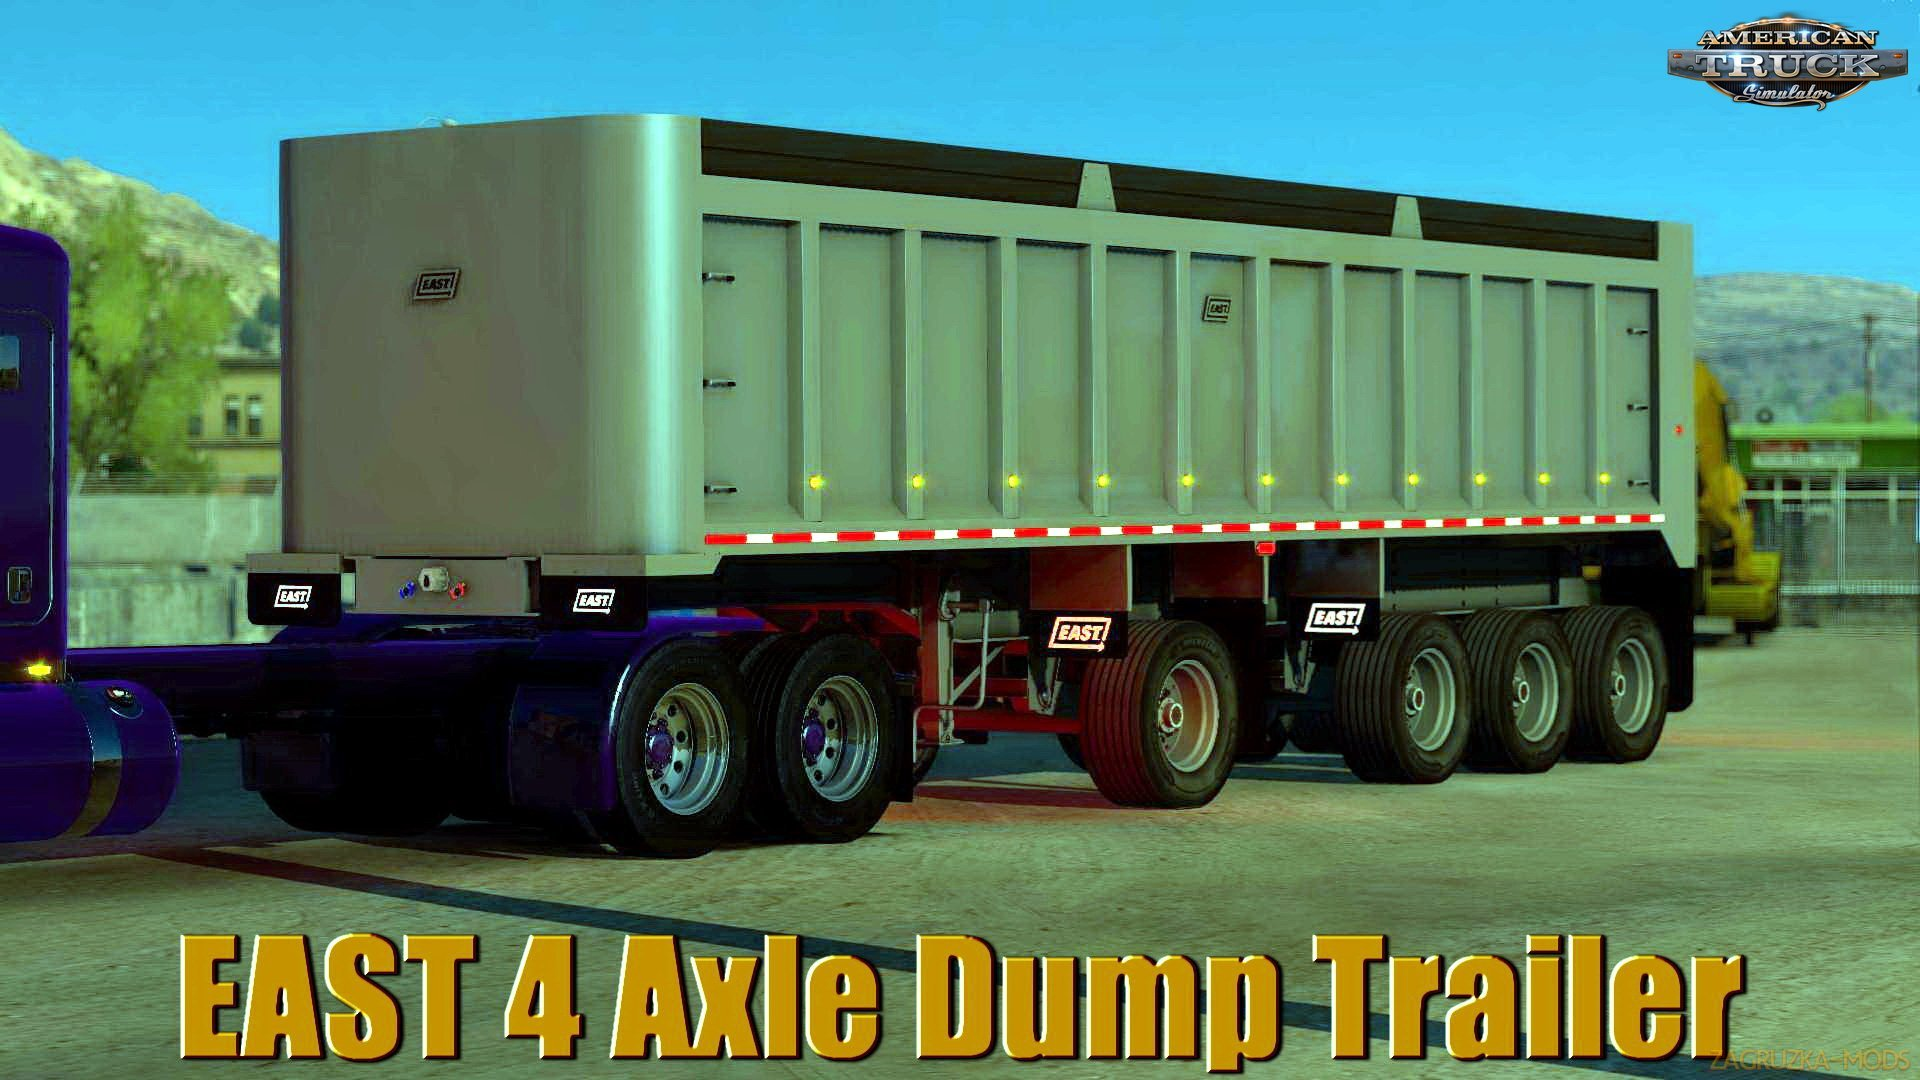 EAST 4 Axle Dump Trailer v1.0 (1.32.x) for ATS